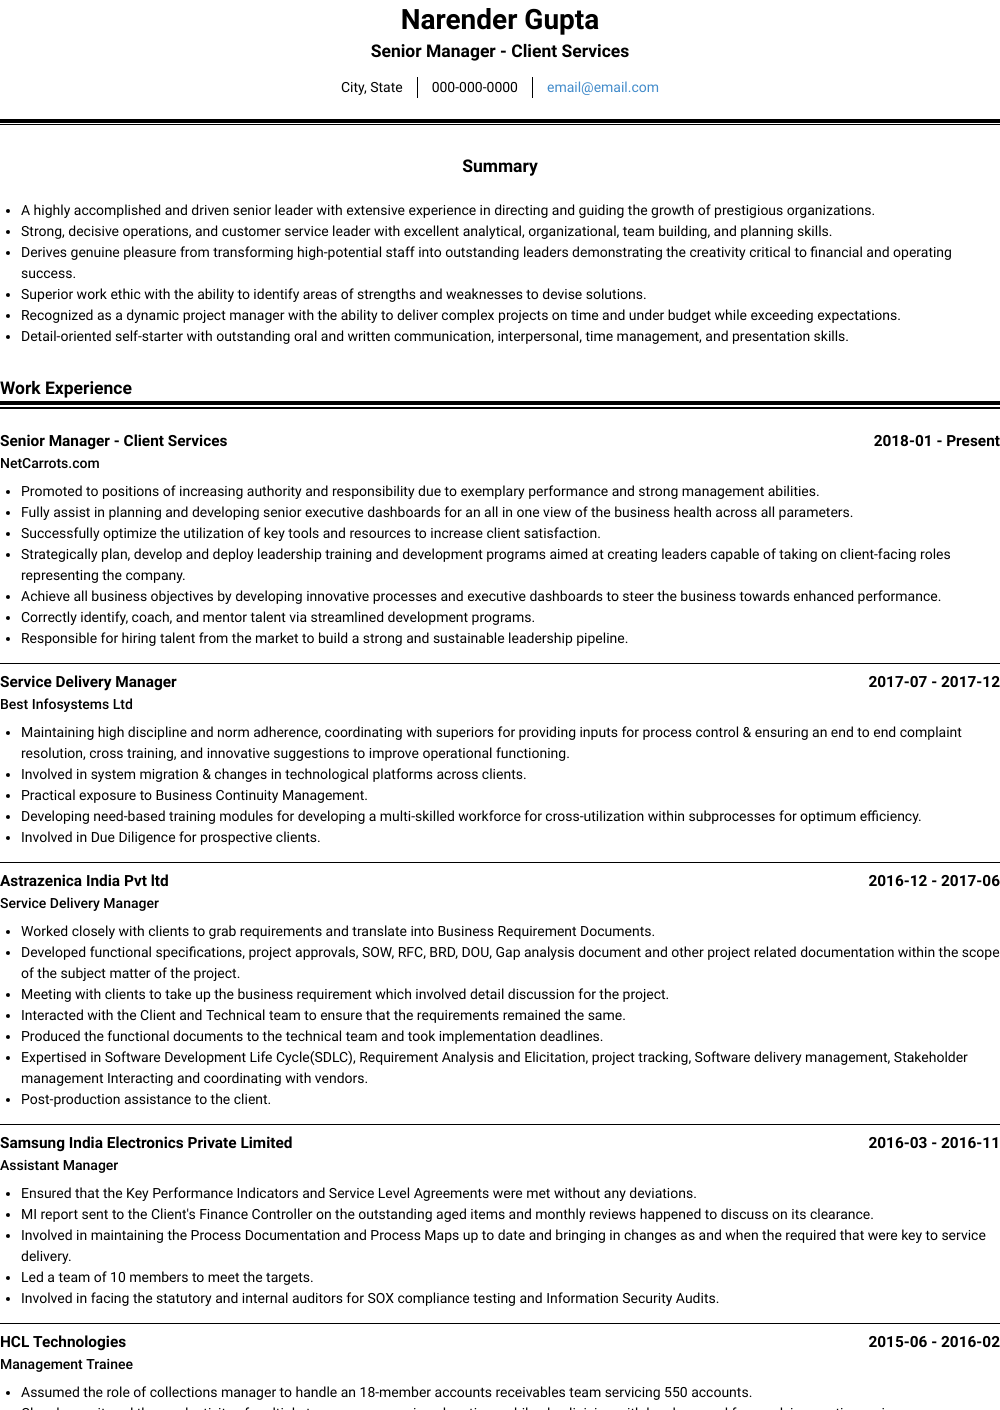 Senior Manager - Client Services Resume Sample and Template